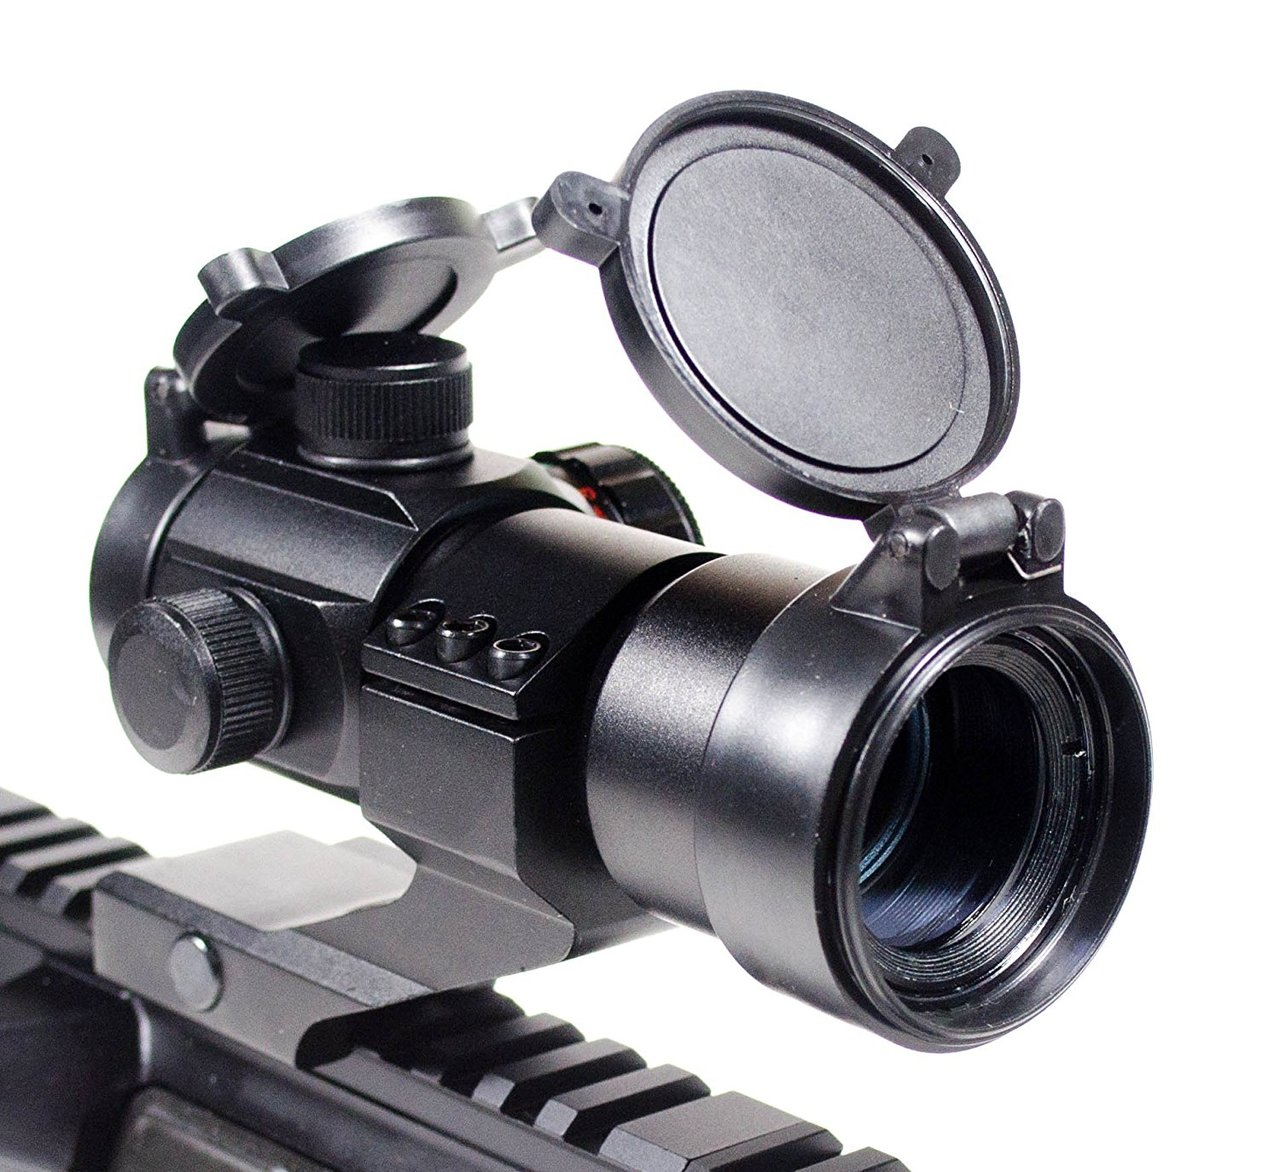 Ade Advanced Opticsc RD1-005 Red Green Dot Sight Scope Tactical Reflex w/ 20mm Weaver Rail 4 MOA